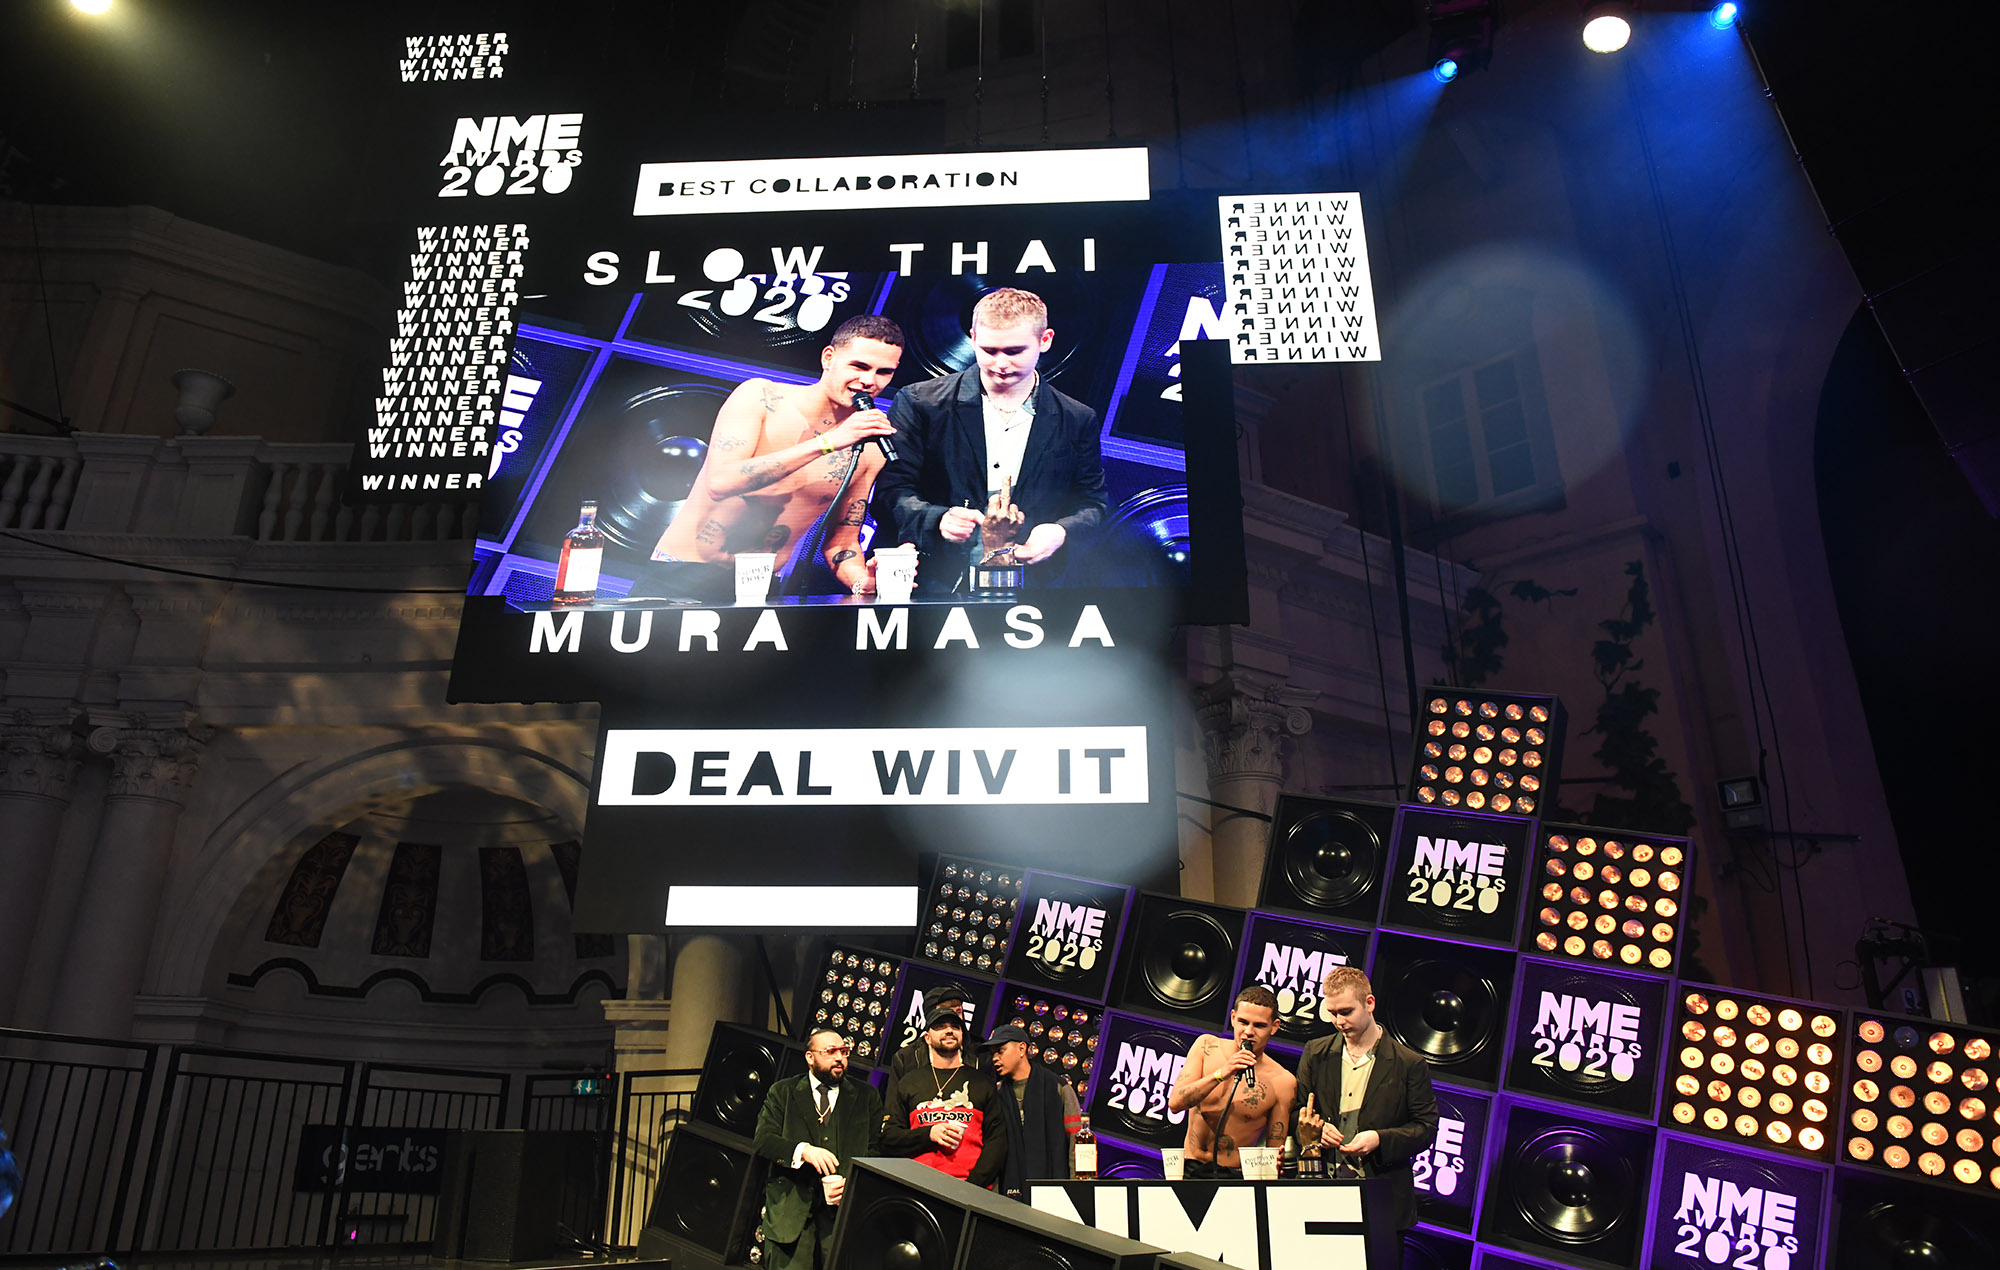 Slowthai & Mura Masa Win Best Collaboration Supported By Brixton Brewery At Nme Awards 2020 photo